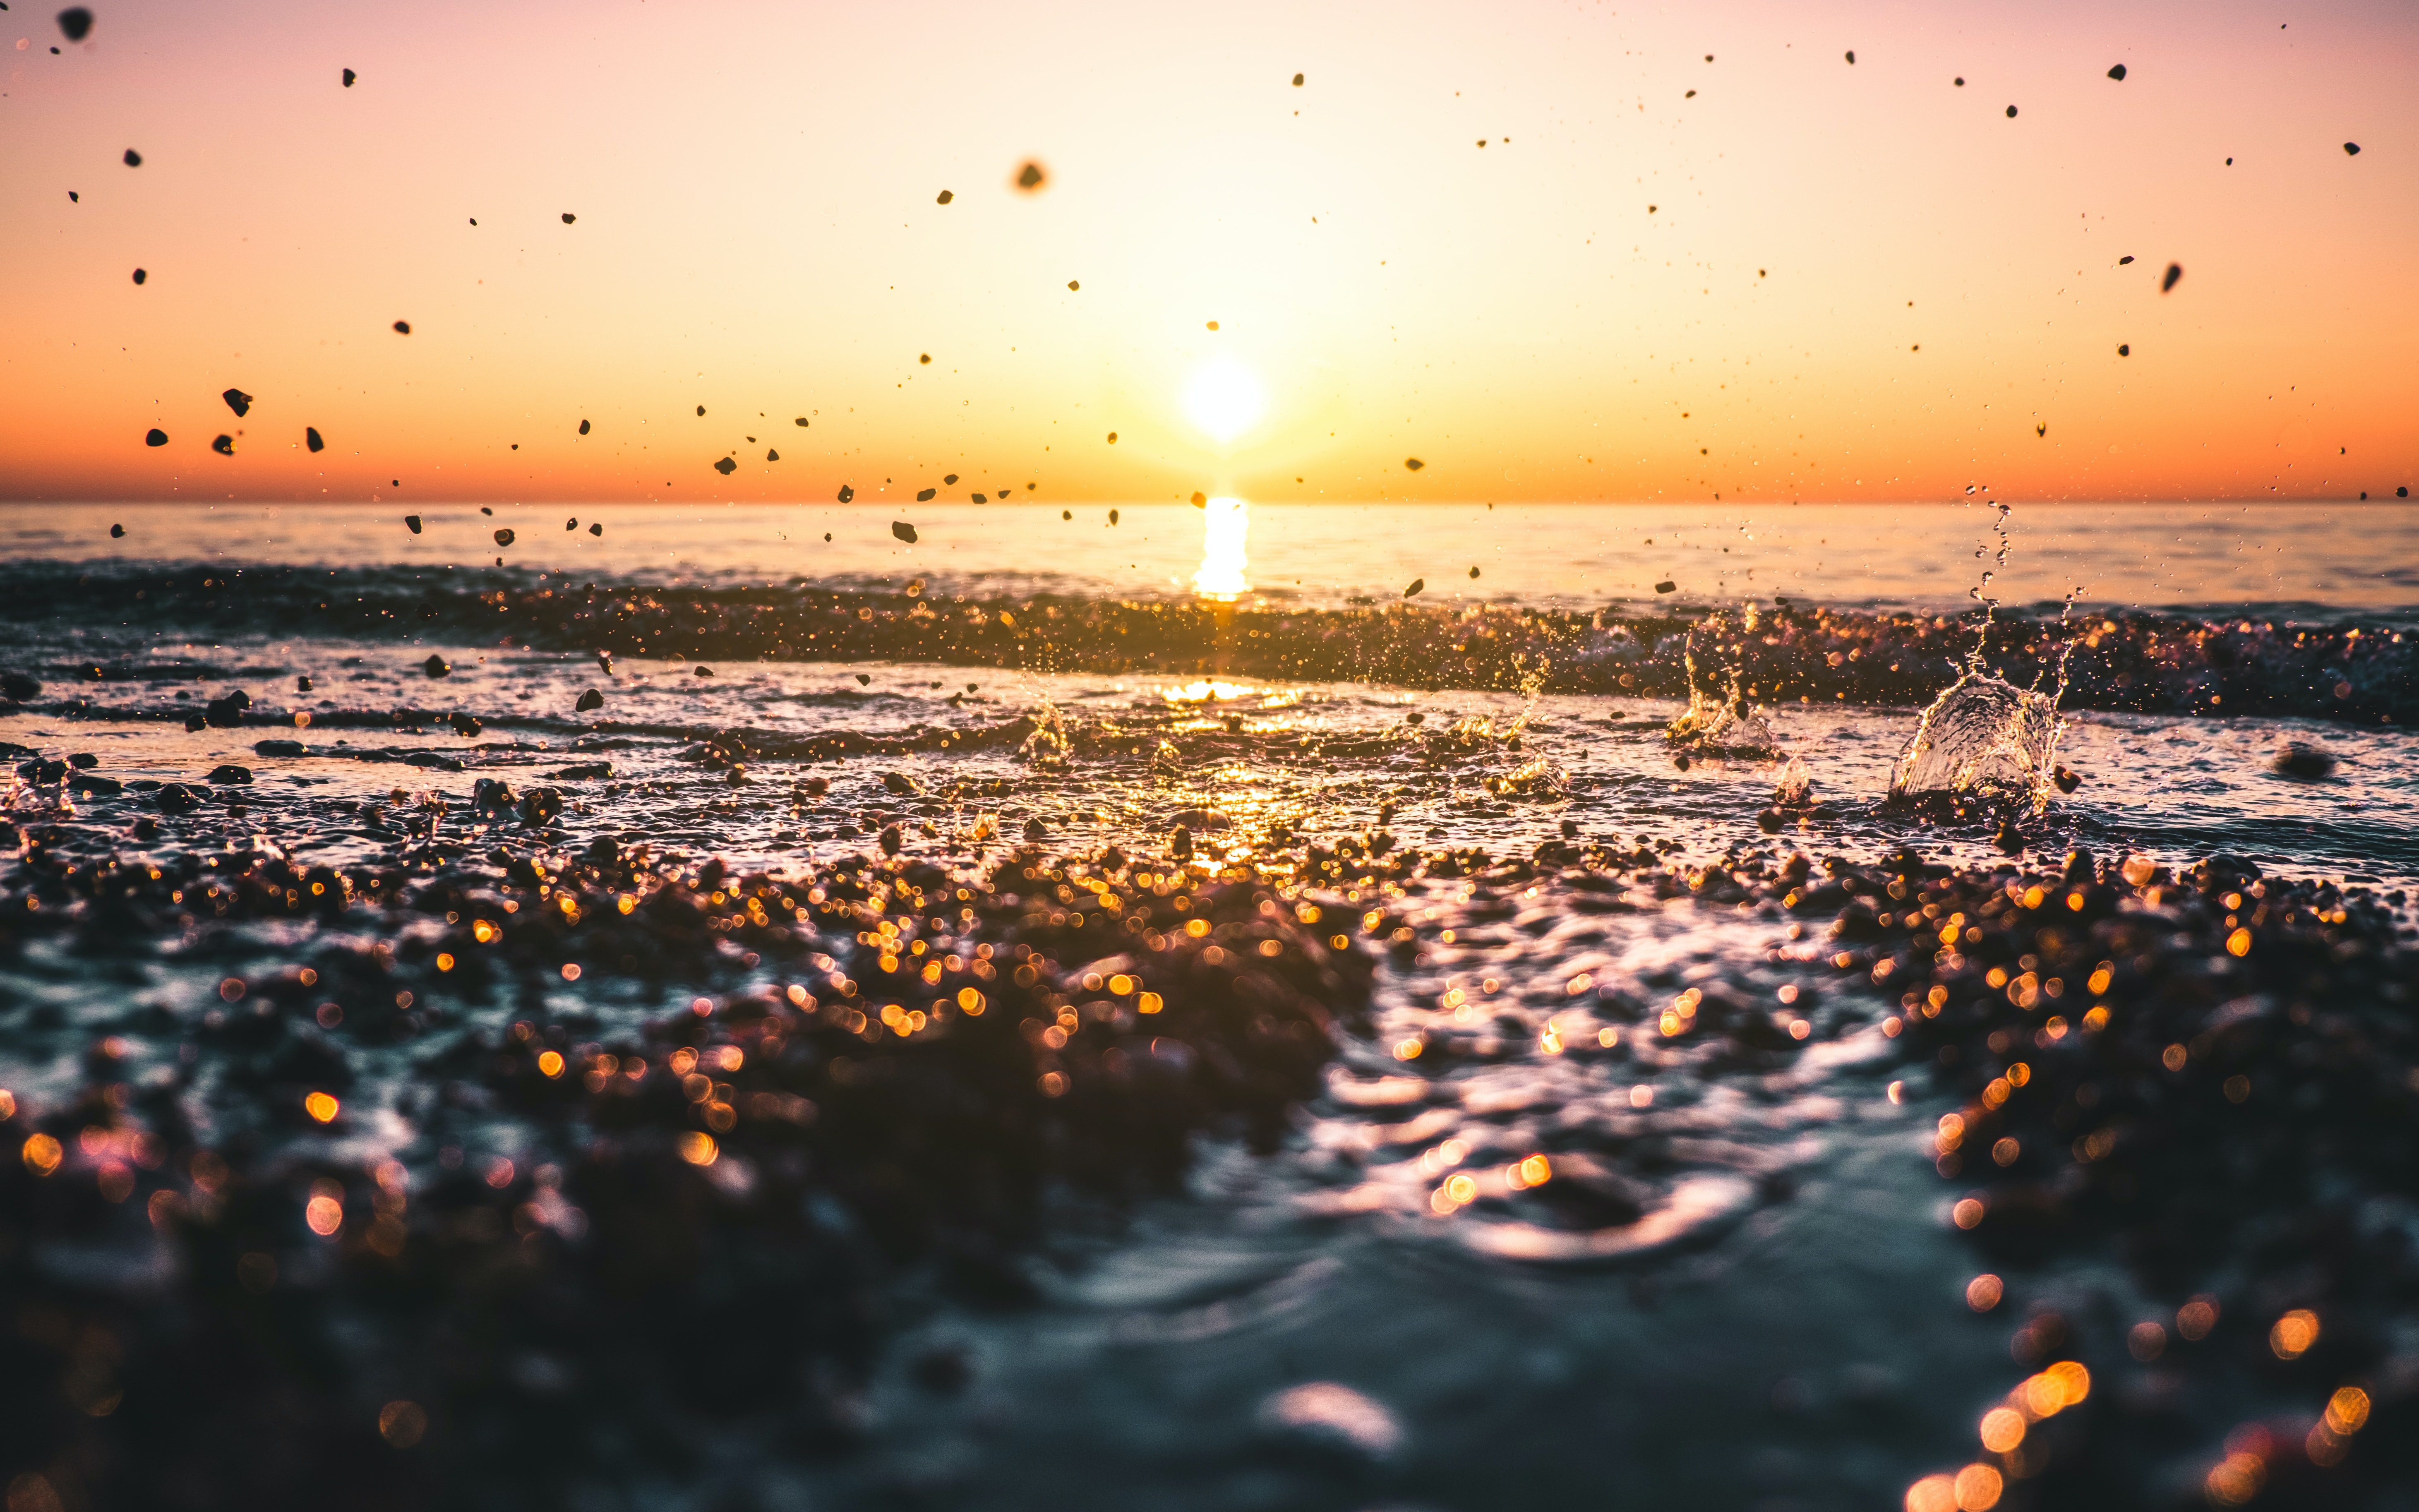 rocks being thrown on the water during sunset